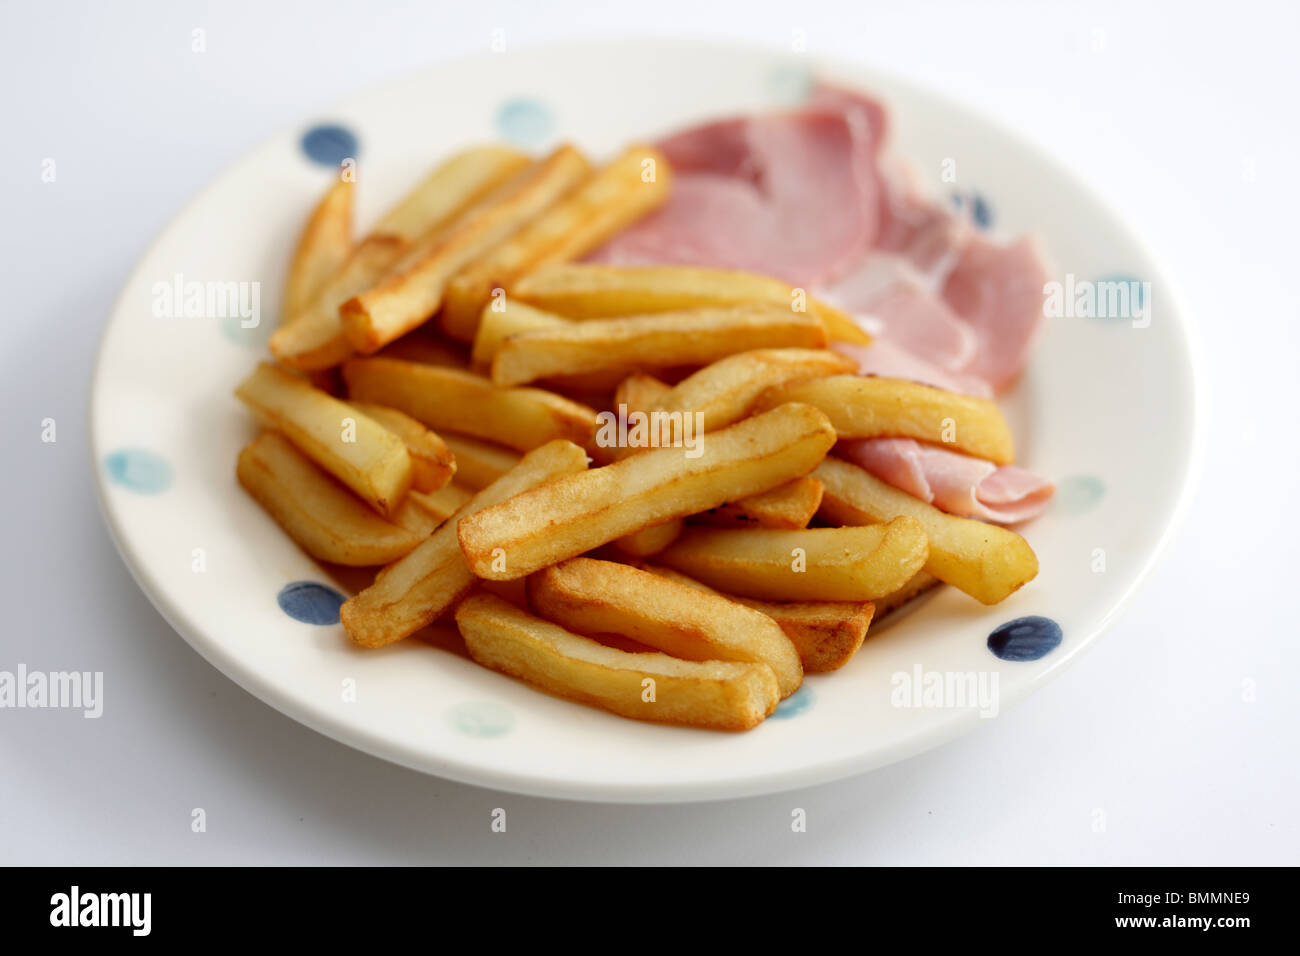 ham and chips stock photo royalty free image 29959393 alamy. Black Bedroom Furniture Sets. Home Design Ideas